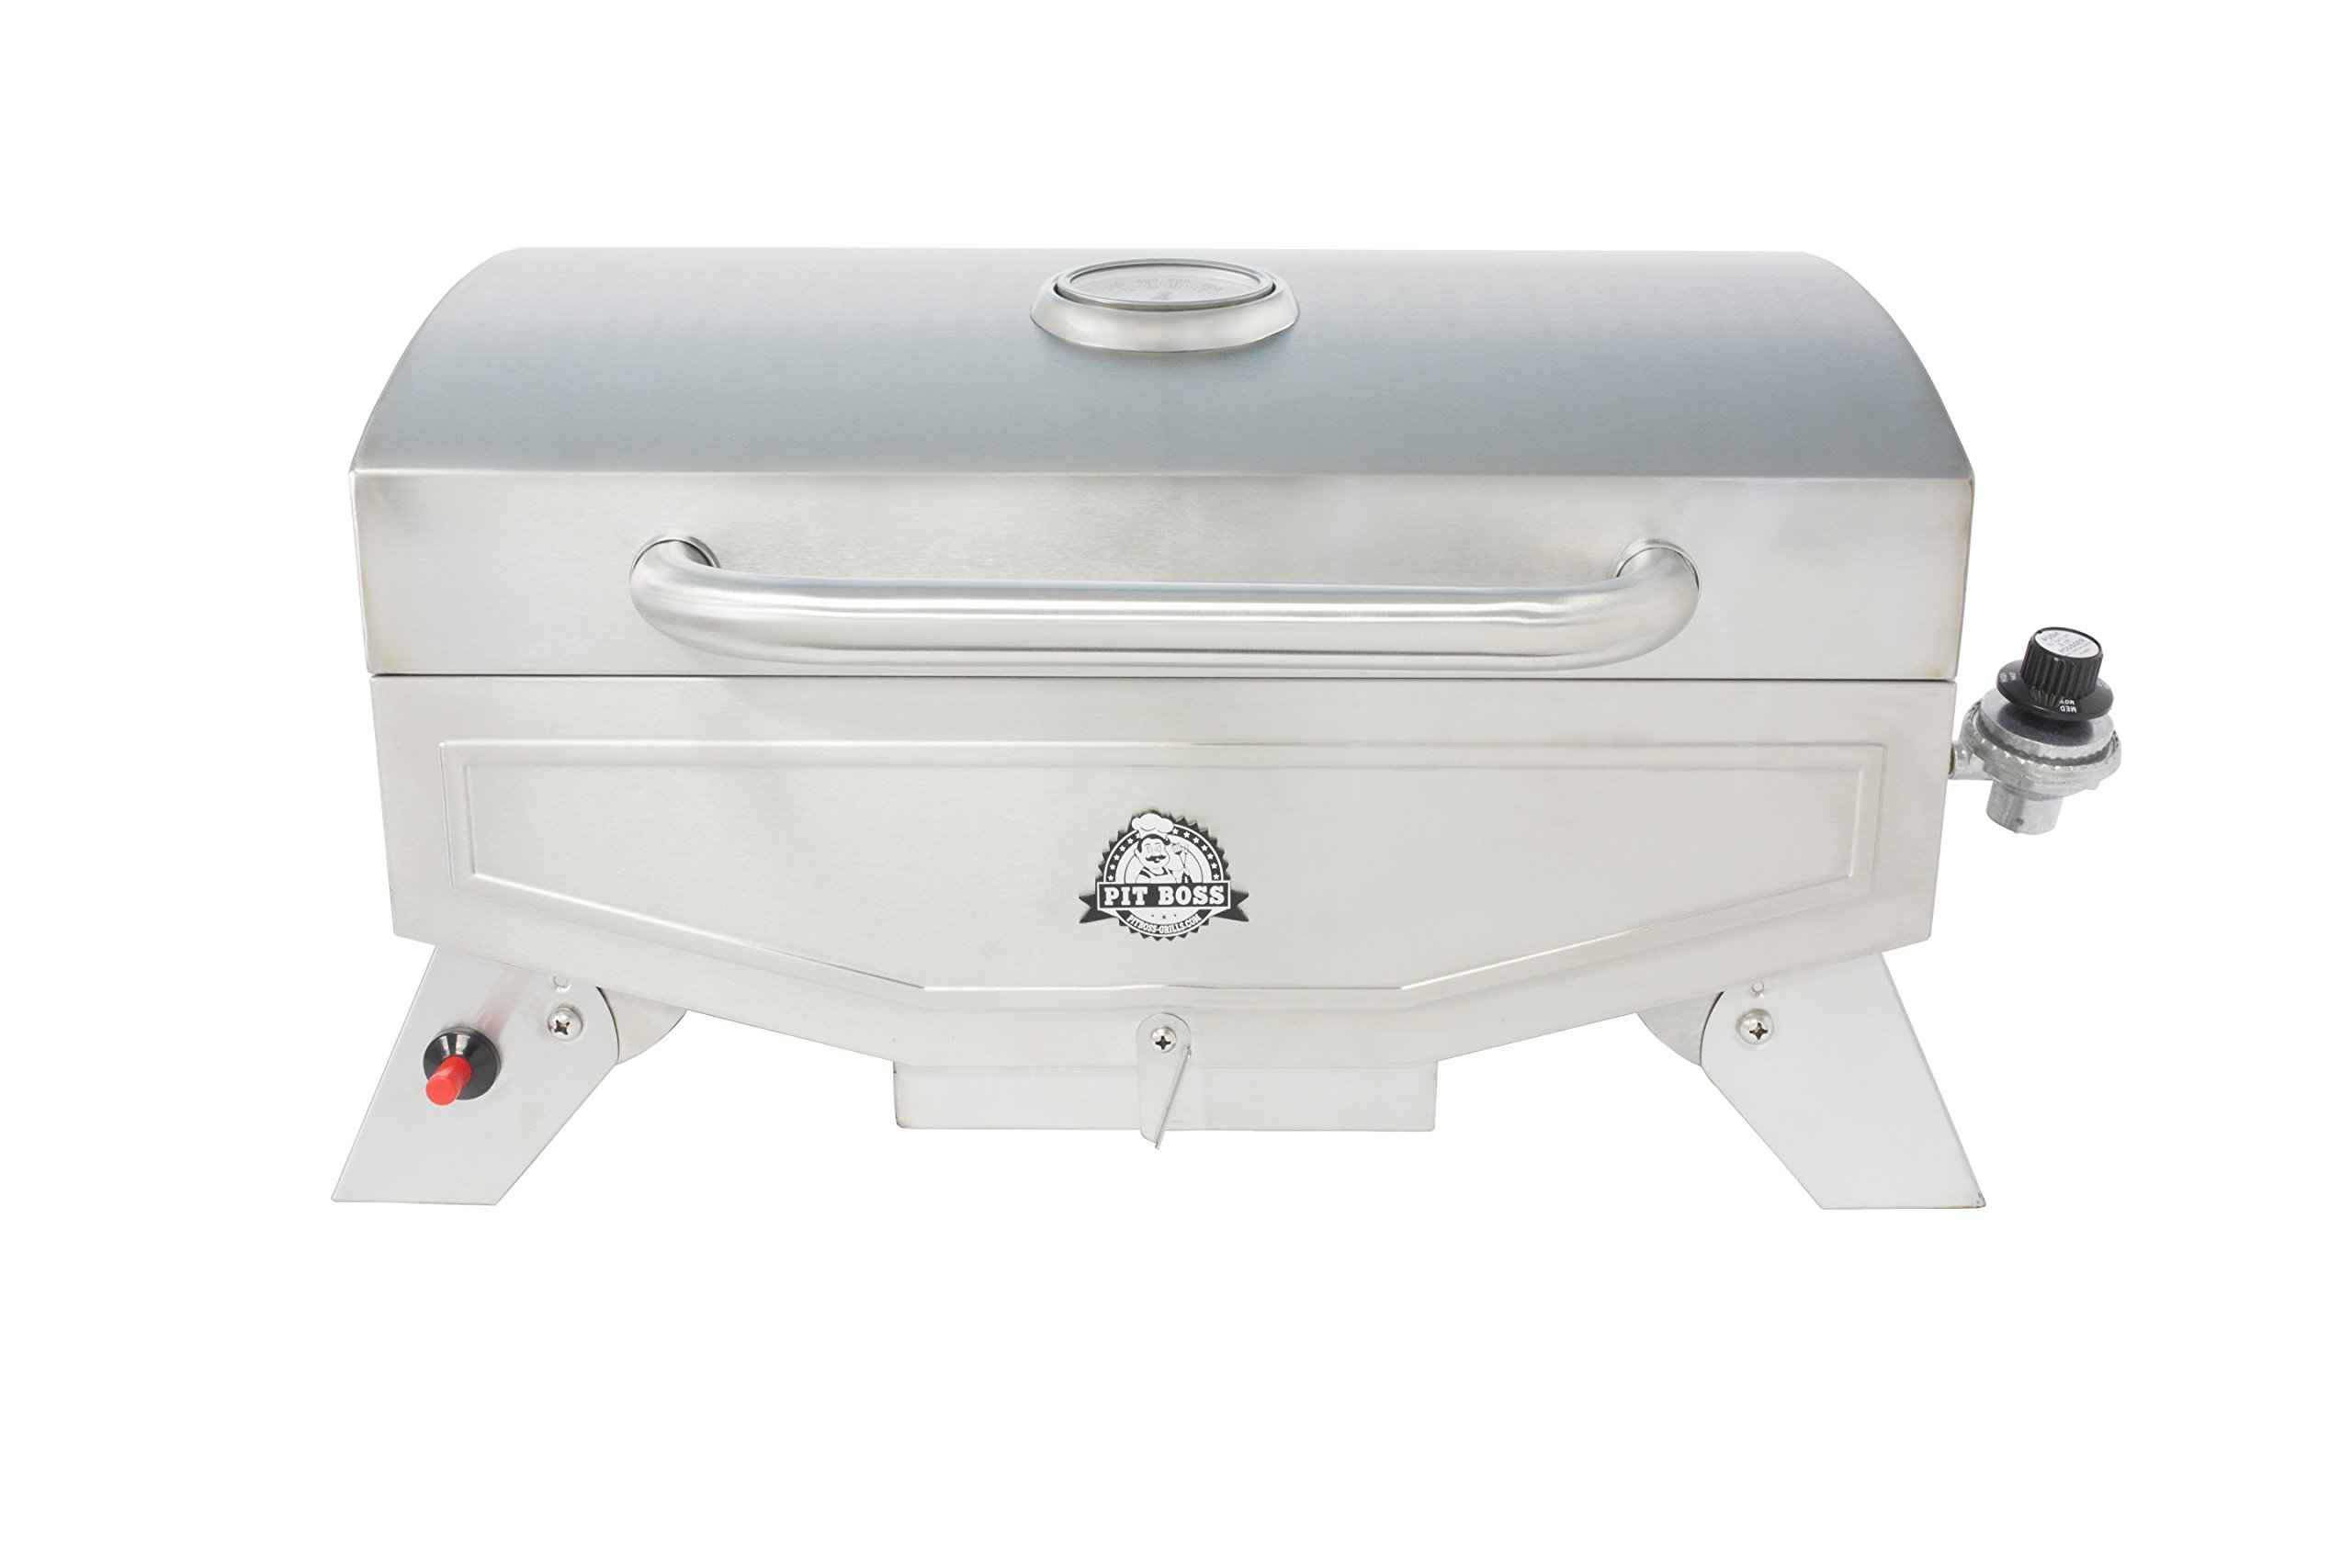 Pit Boss Grills PB100P1 Pit Stop Single-Burner Portable Tabletop Grill by Pit Boss Grills